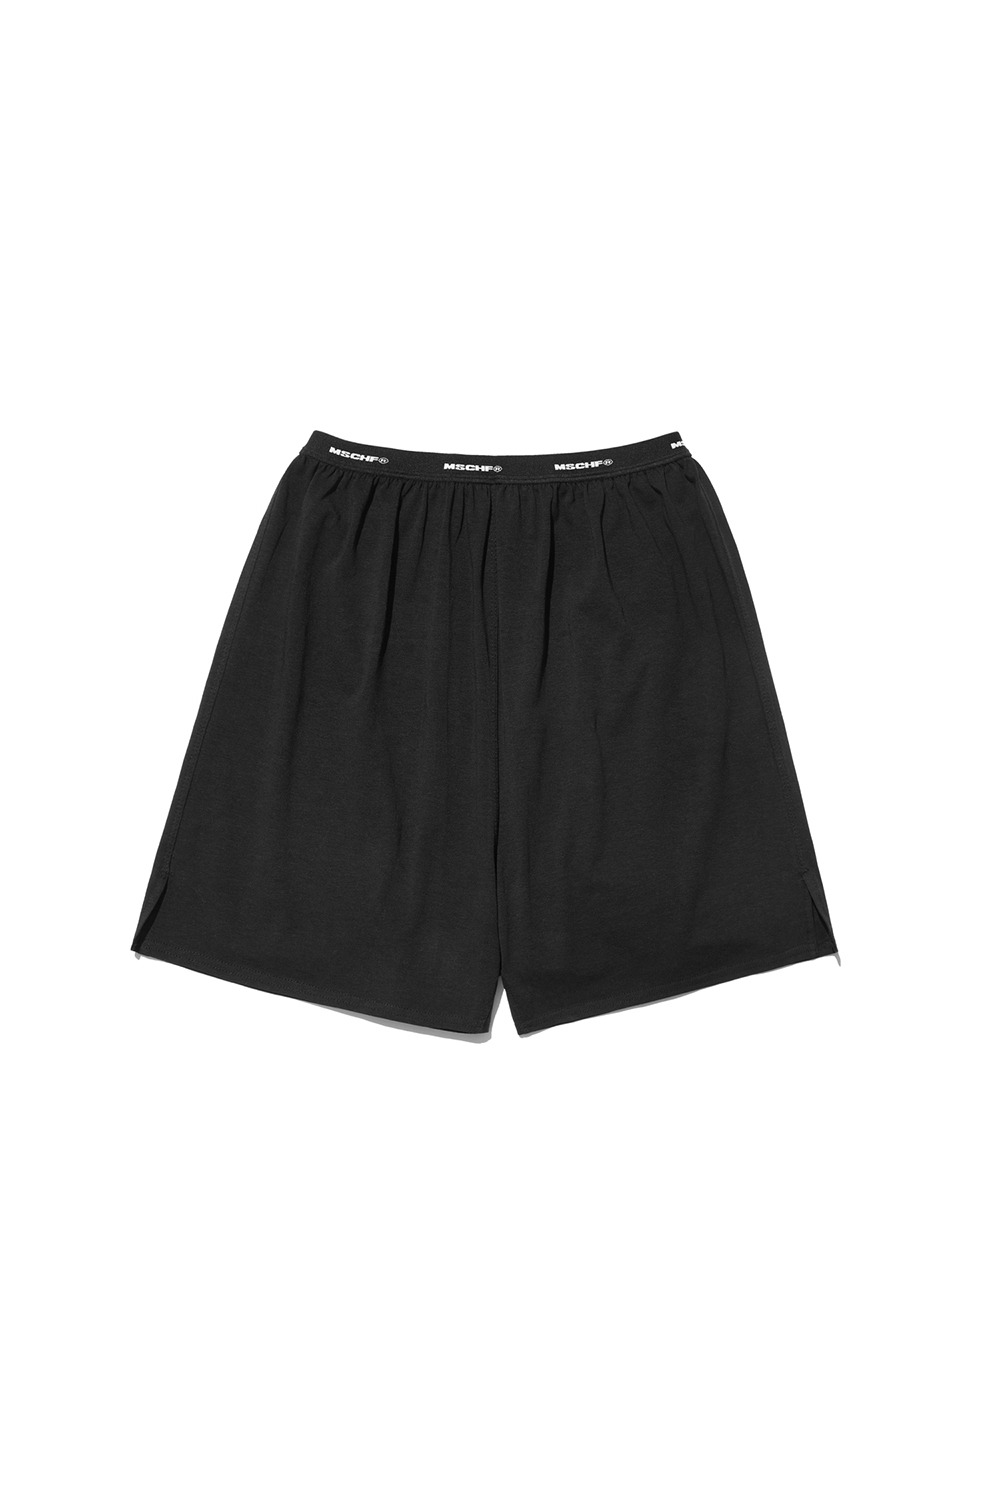 COLLECTIVE OG DRAWERS_black